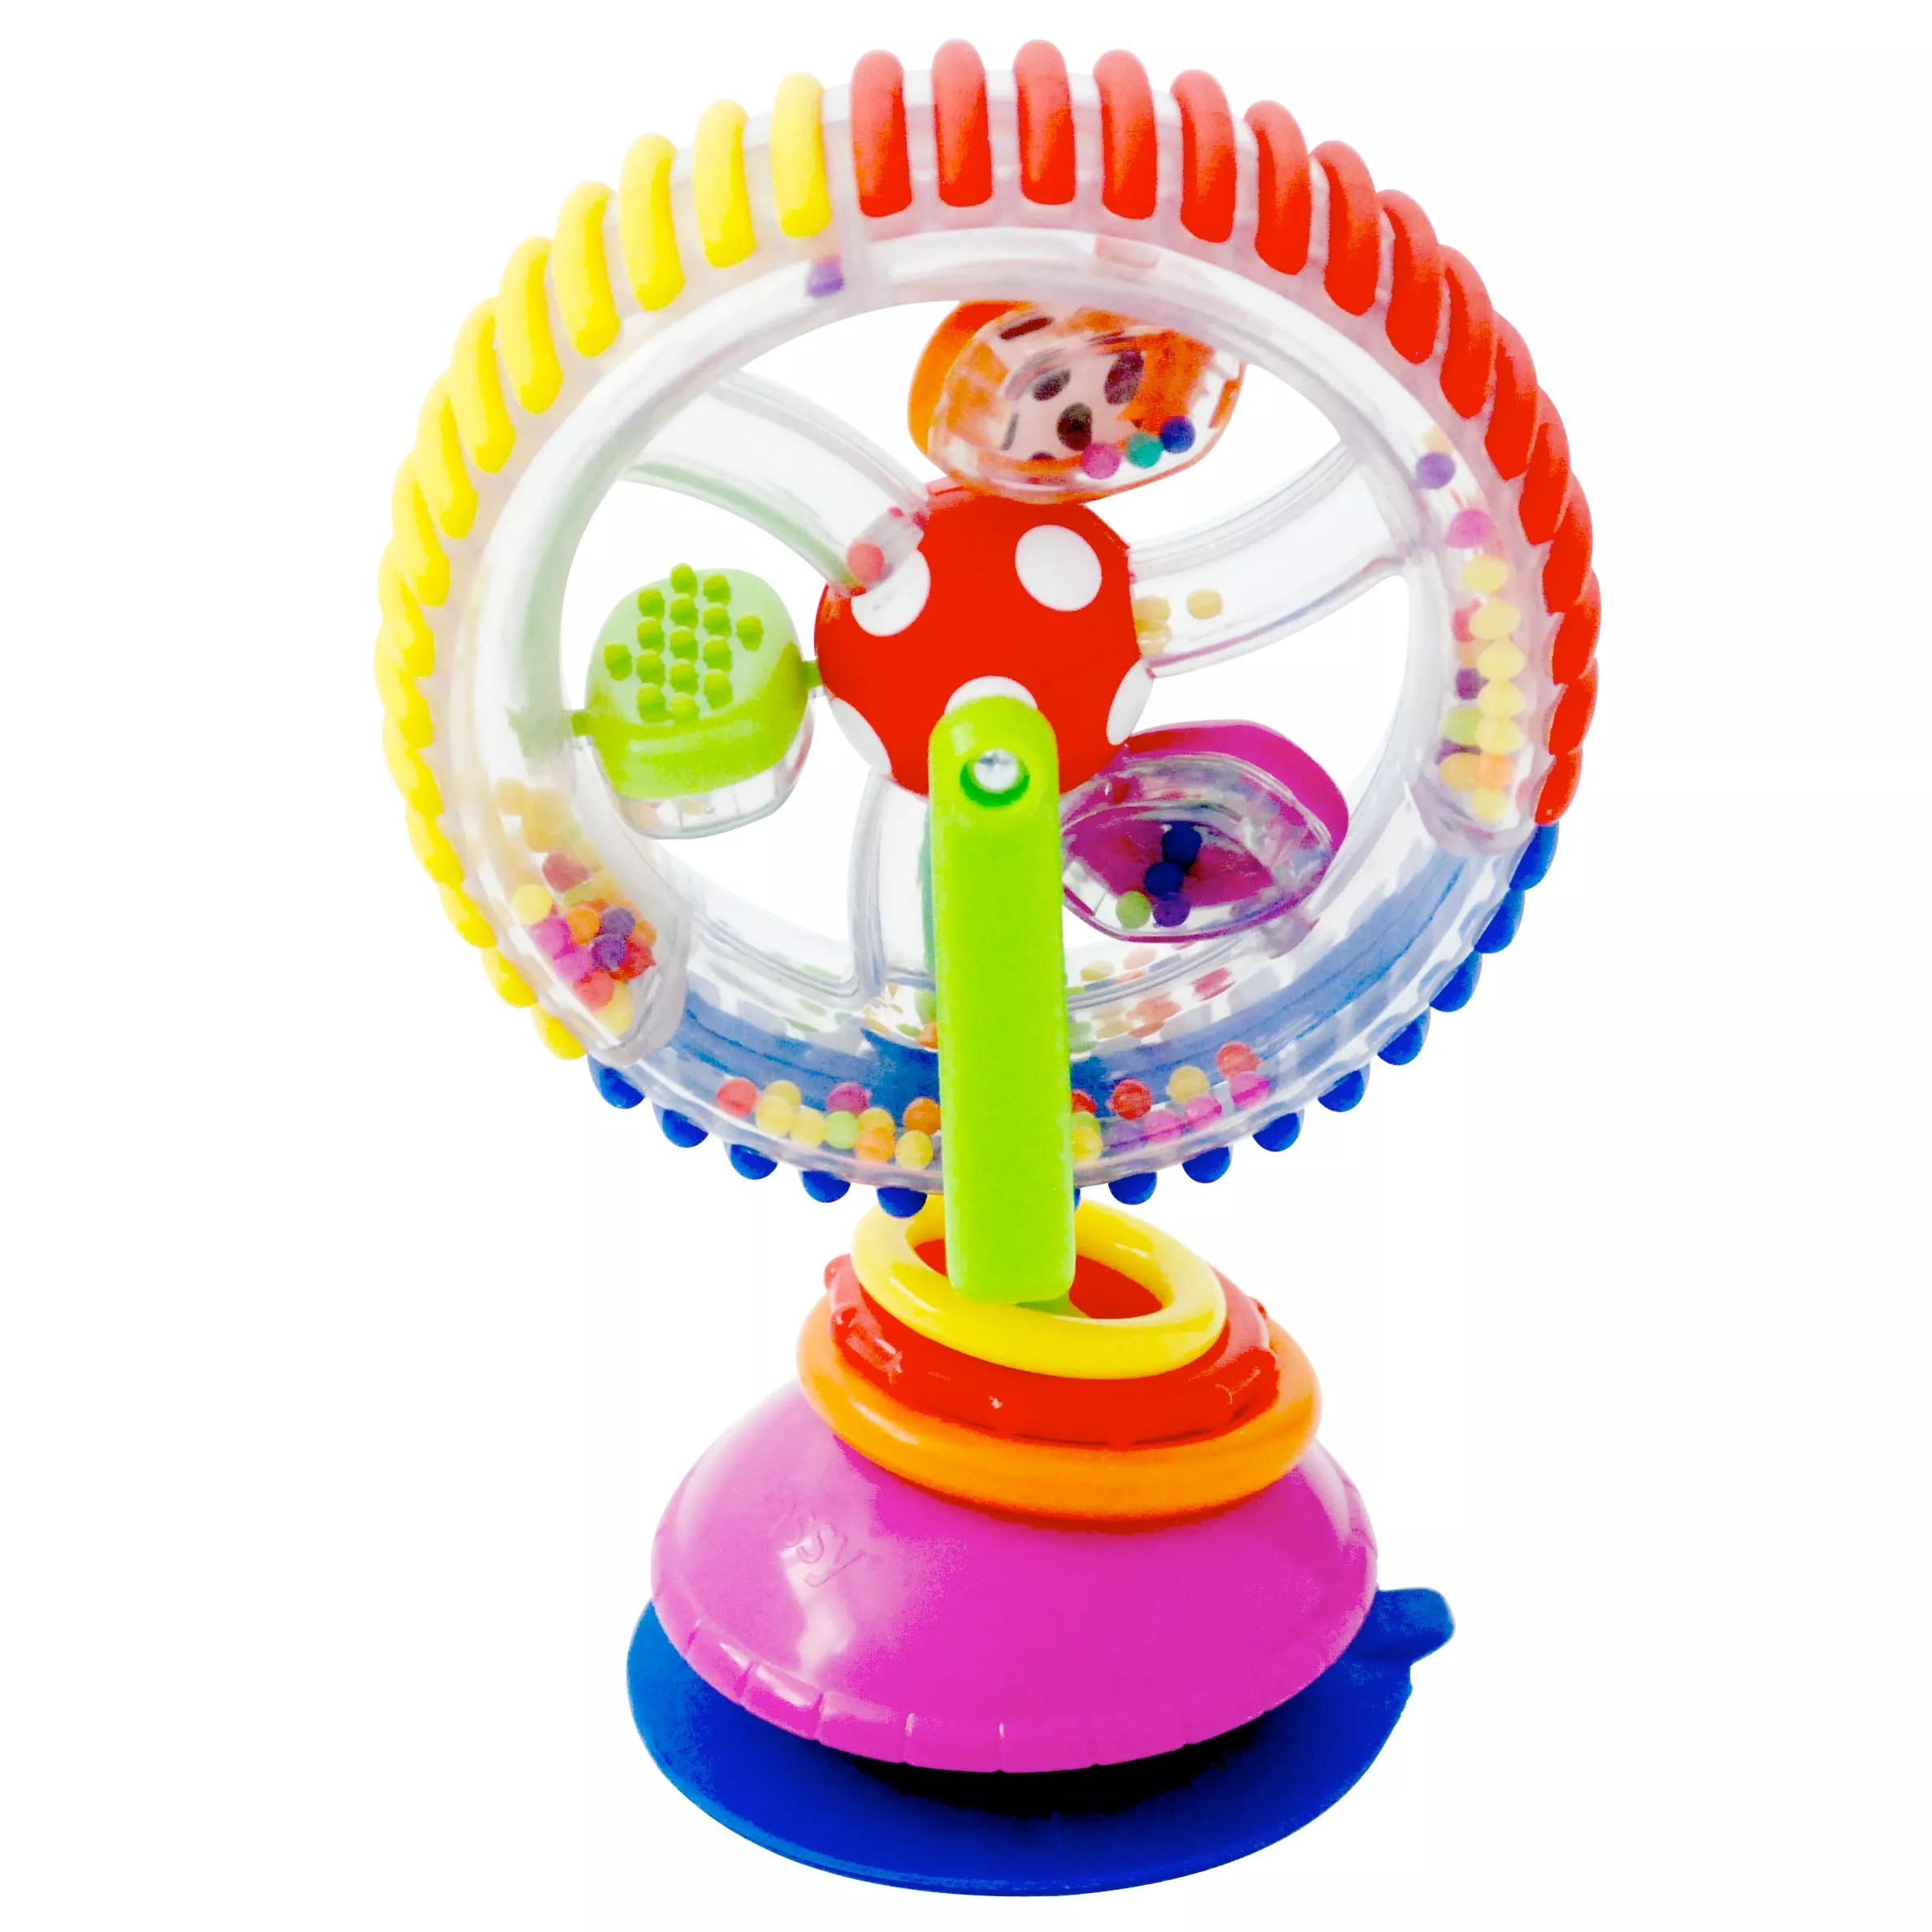 high chair suction toy rocker game sassy wonder wheel highchair at john lewis and partners